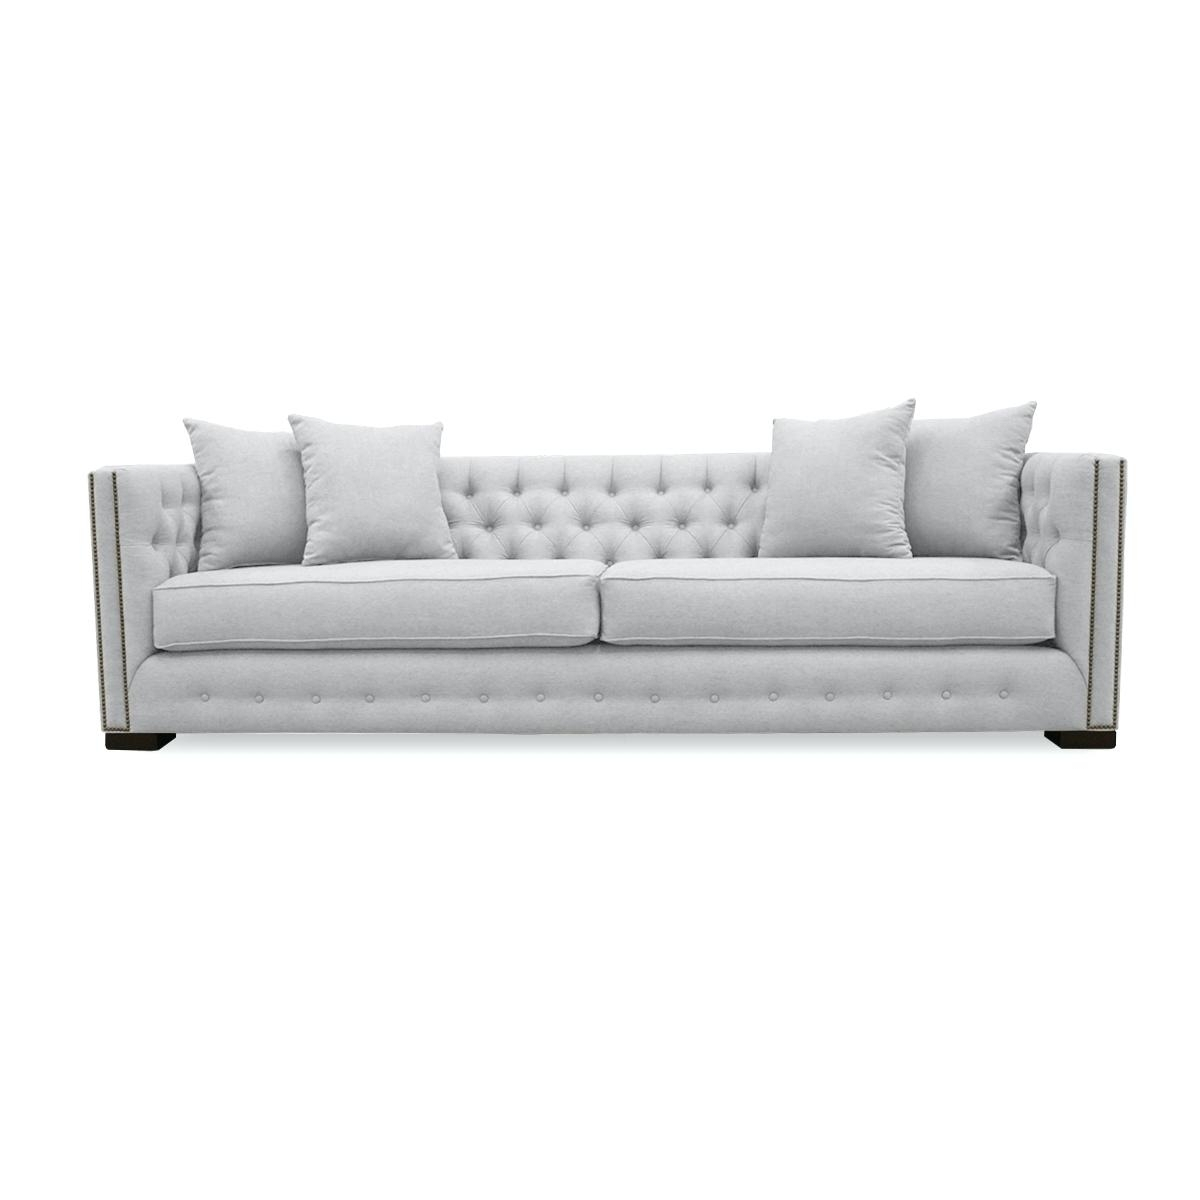 Most Up To Date Salt Lake City Sectional Sofas Intended For Sofa : Grey Tufted Sofa Charcoal Gray Nailhead Light Salt Lake (View 9 of 20)